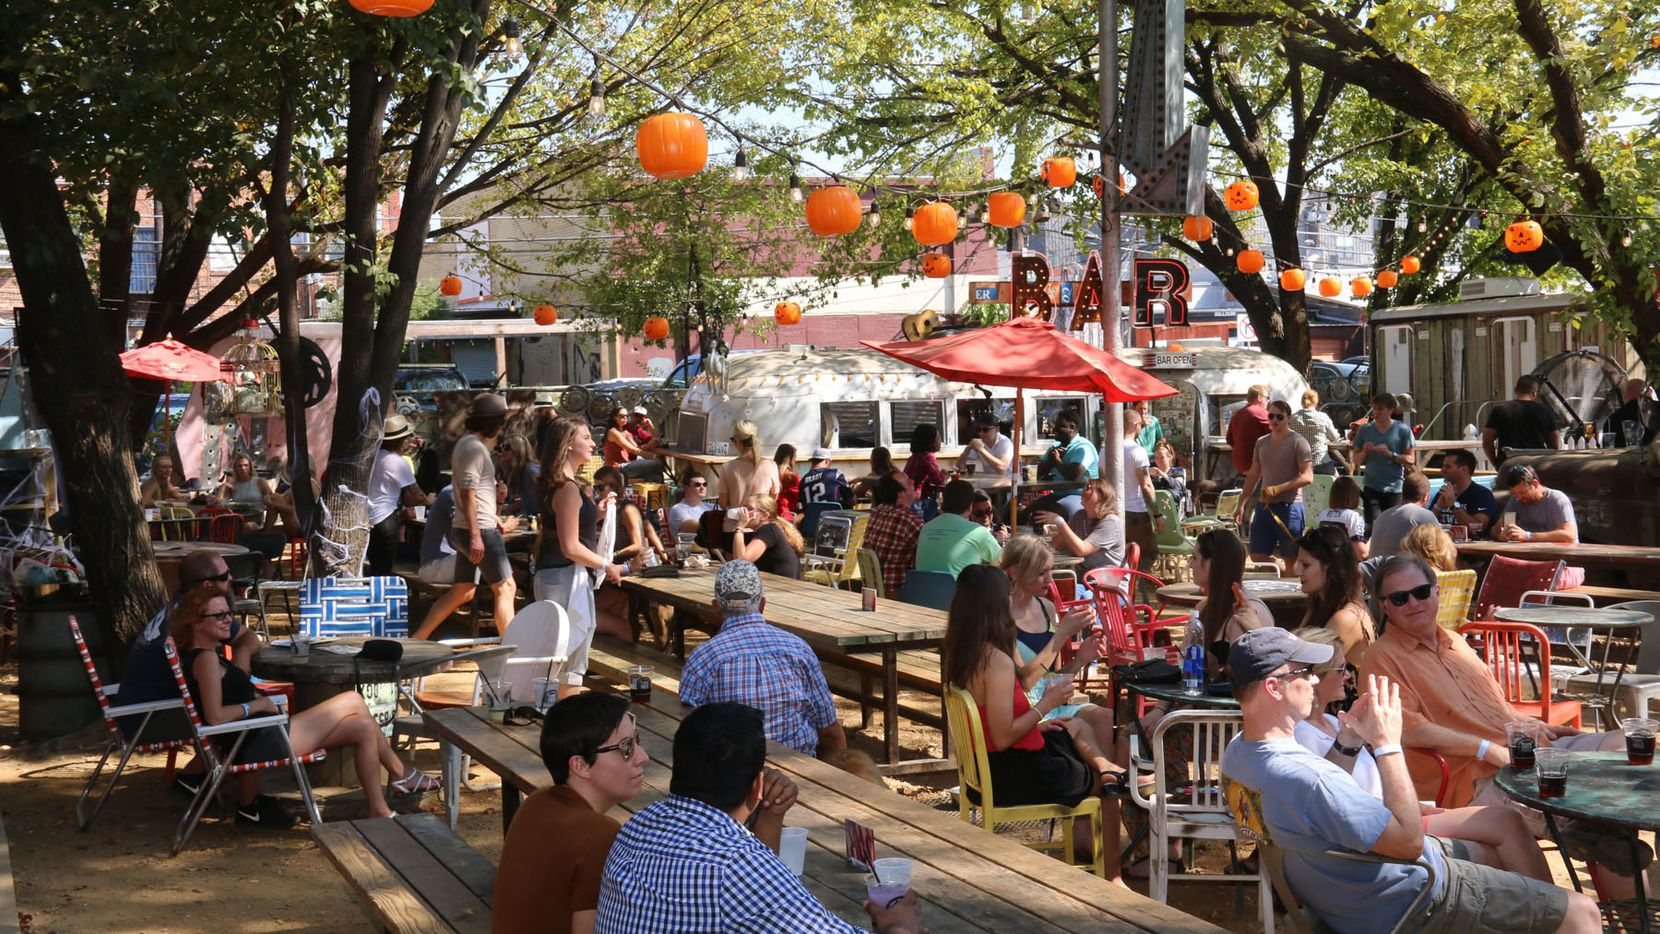 Truck Yard – a Backyard Bar With Food – Plans Fort Worth Spot With Live Music